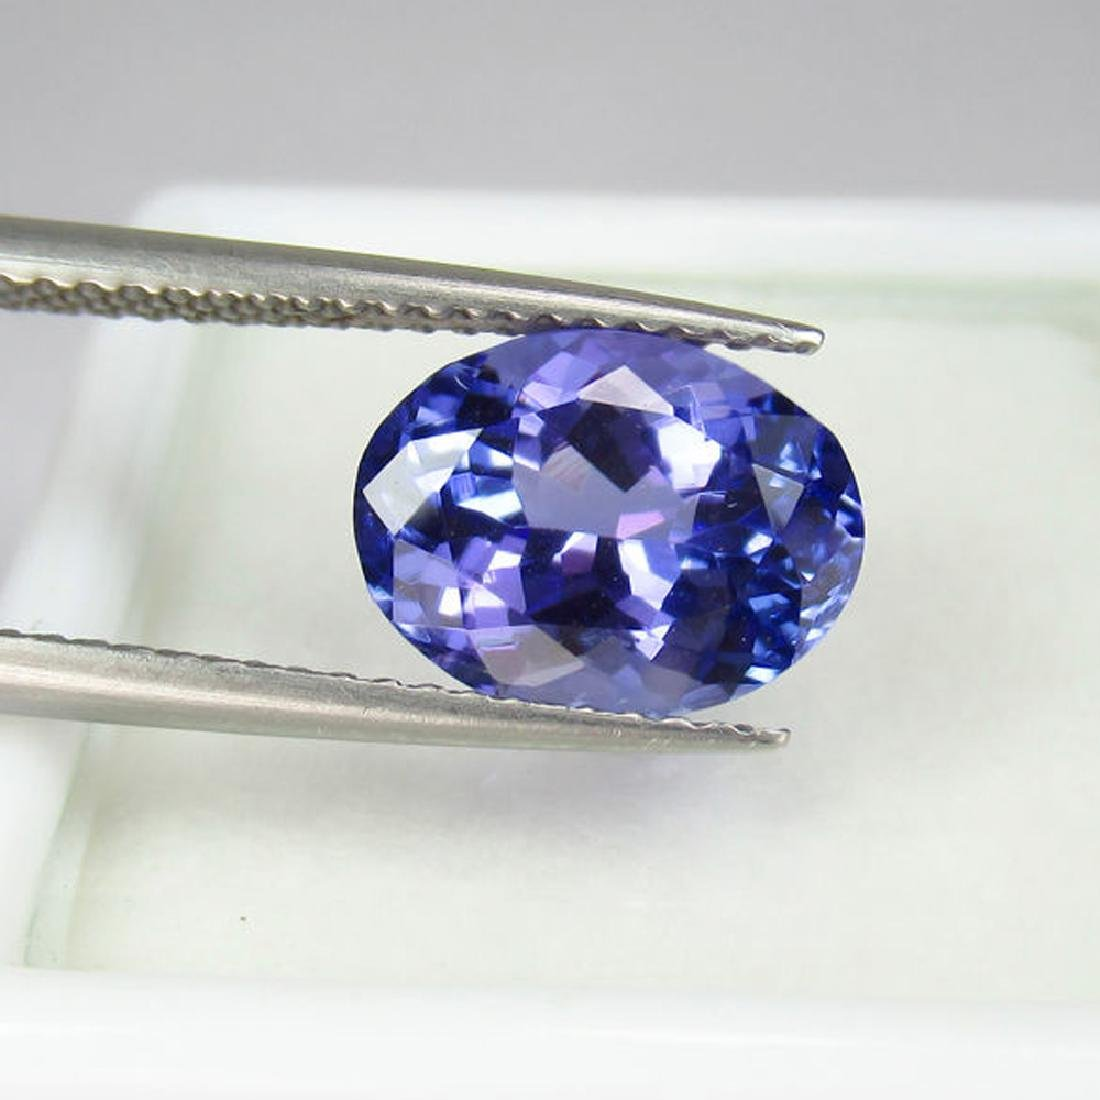 3.05 Ctw  IGI Certified Natural Loose Oval Tanzanite - 2